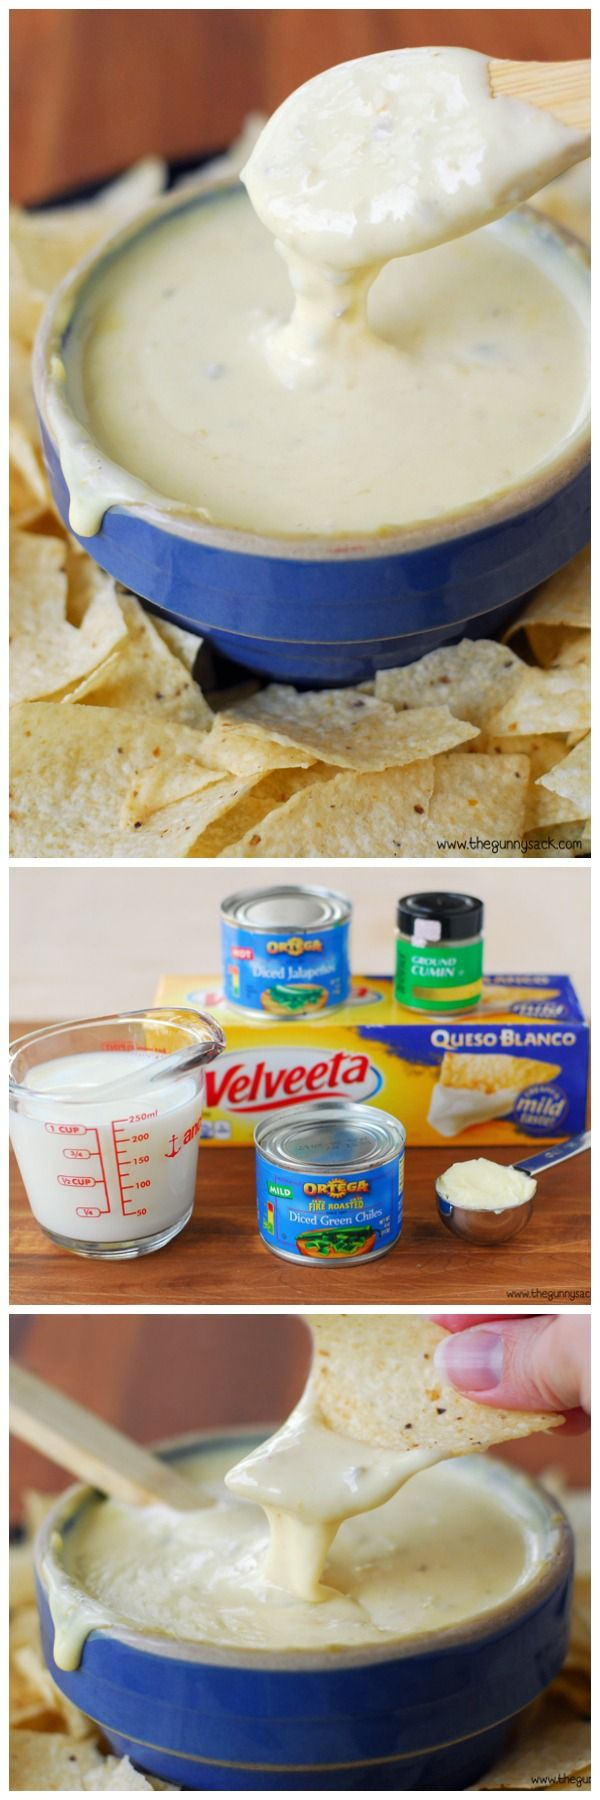 Easy Queso Blanco Recipe – White Cheese Dip... This recipe is an easy way to make white cheese dip using Velveeta and peppers. It is a great appetizer for parties!